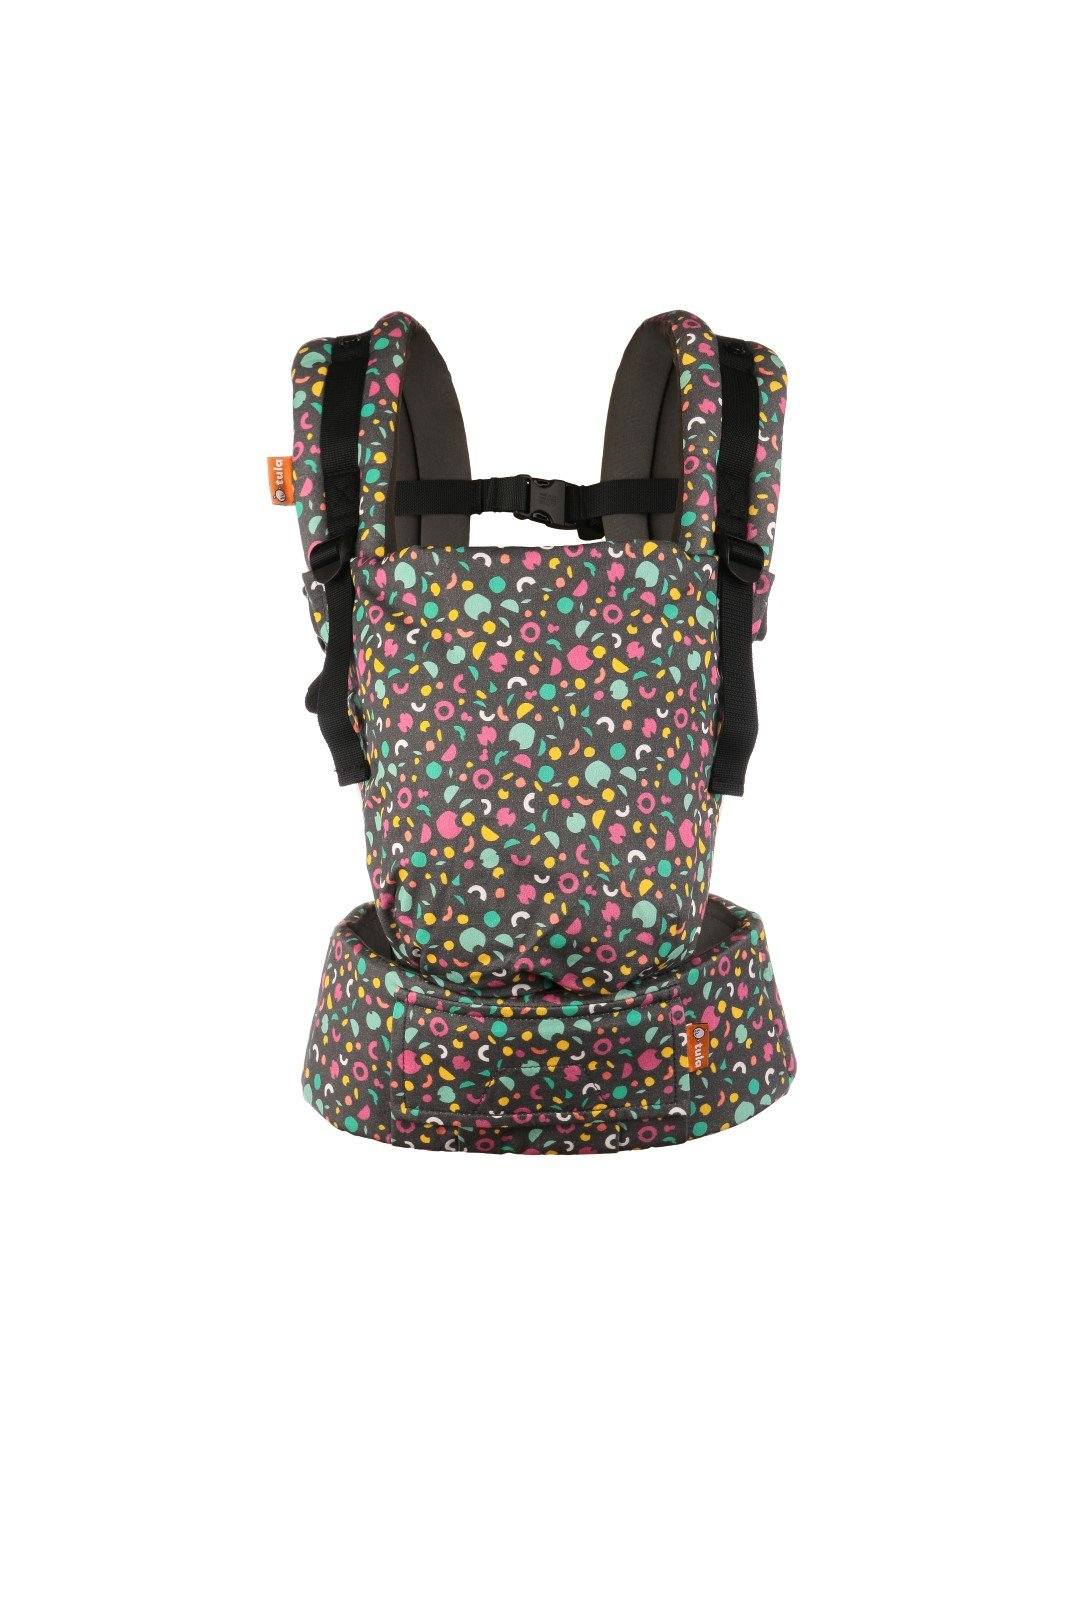 2fa723c22a1 PARTY PIECES Tula Toddler Carrier 11-27kgs   25-60i lbs ...